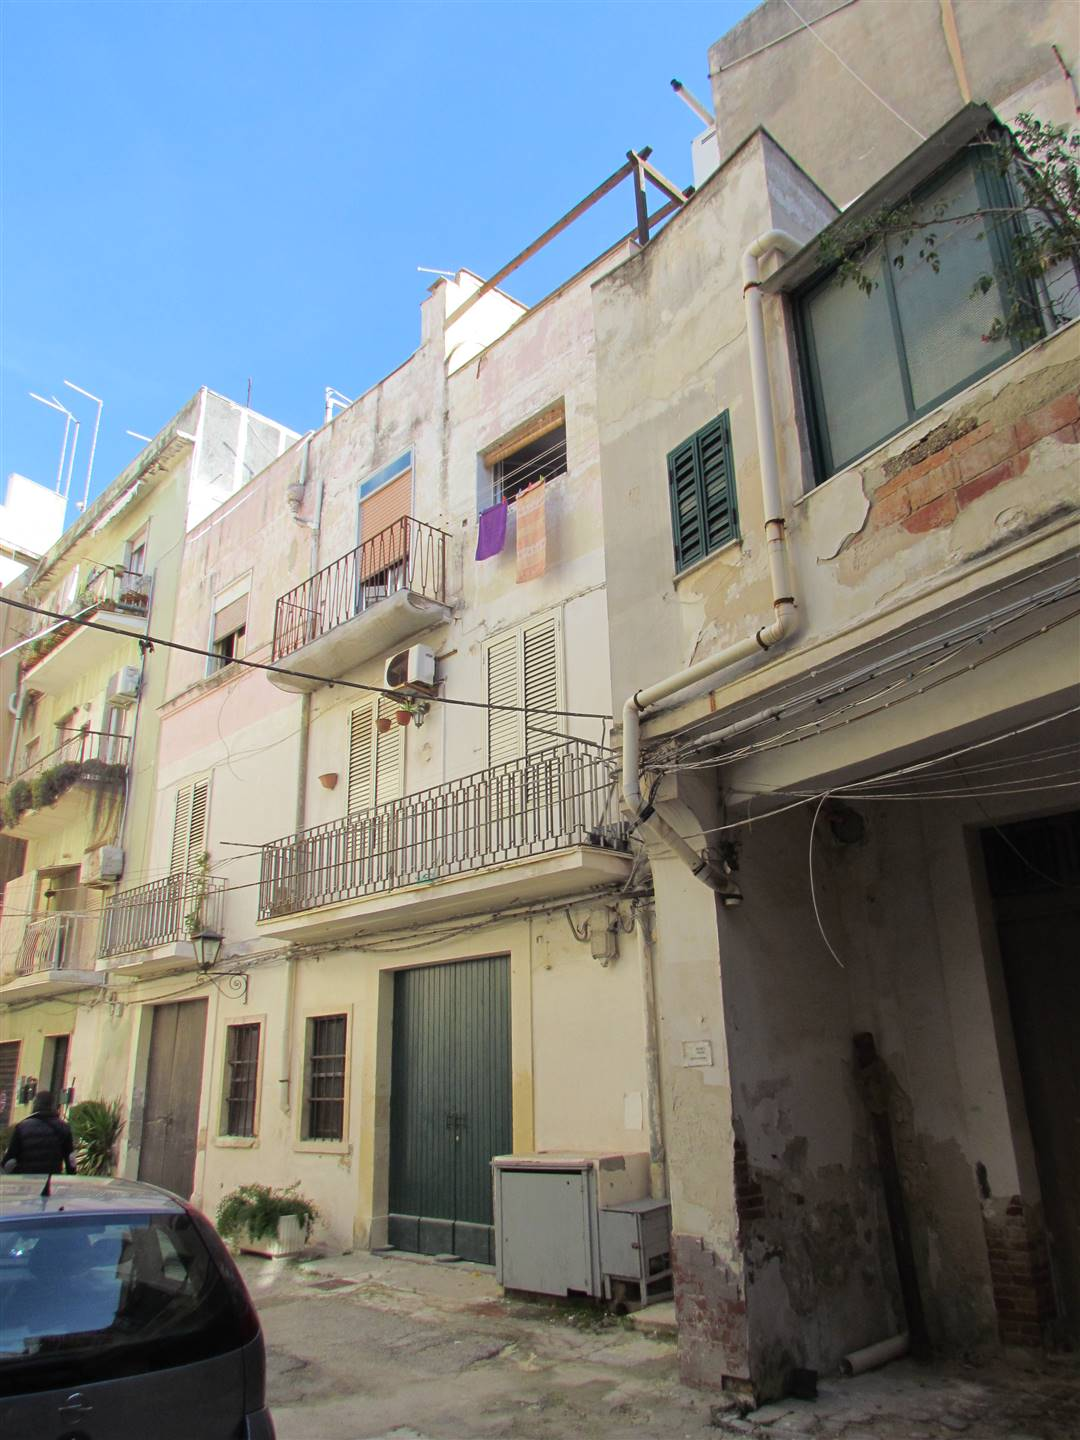 In Ortigia, in an internal courtyard of Via della Maestranza, we have an 82 sqm apartment located on the second and third floor. The second floor is